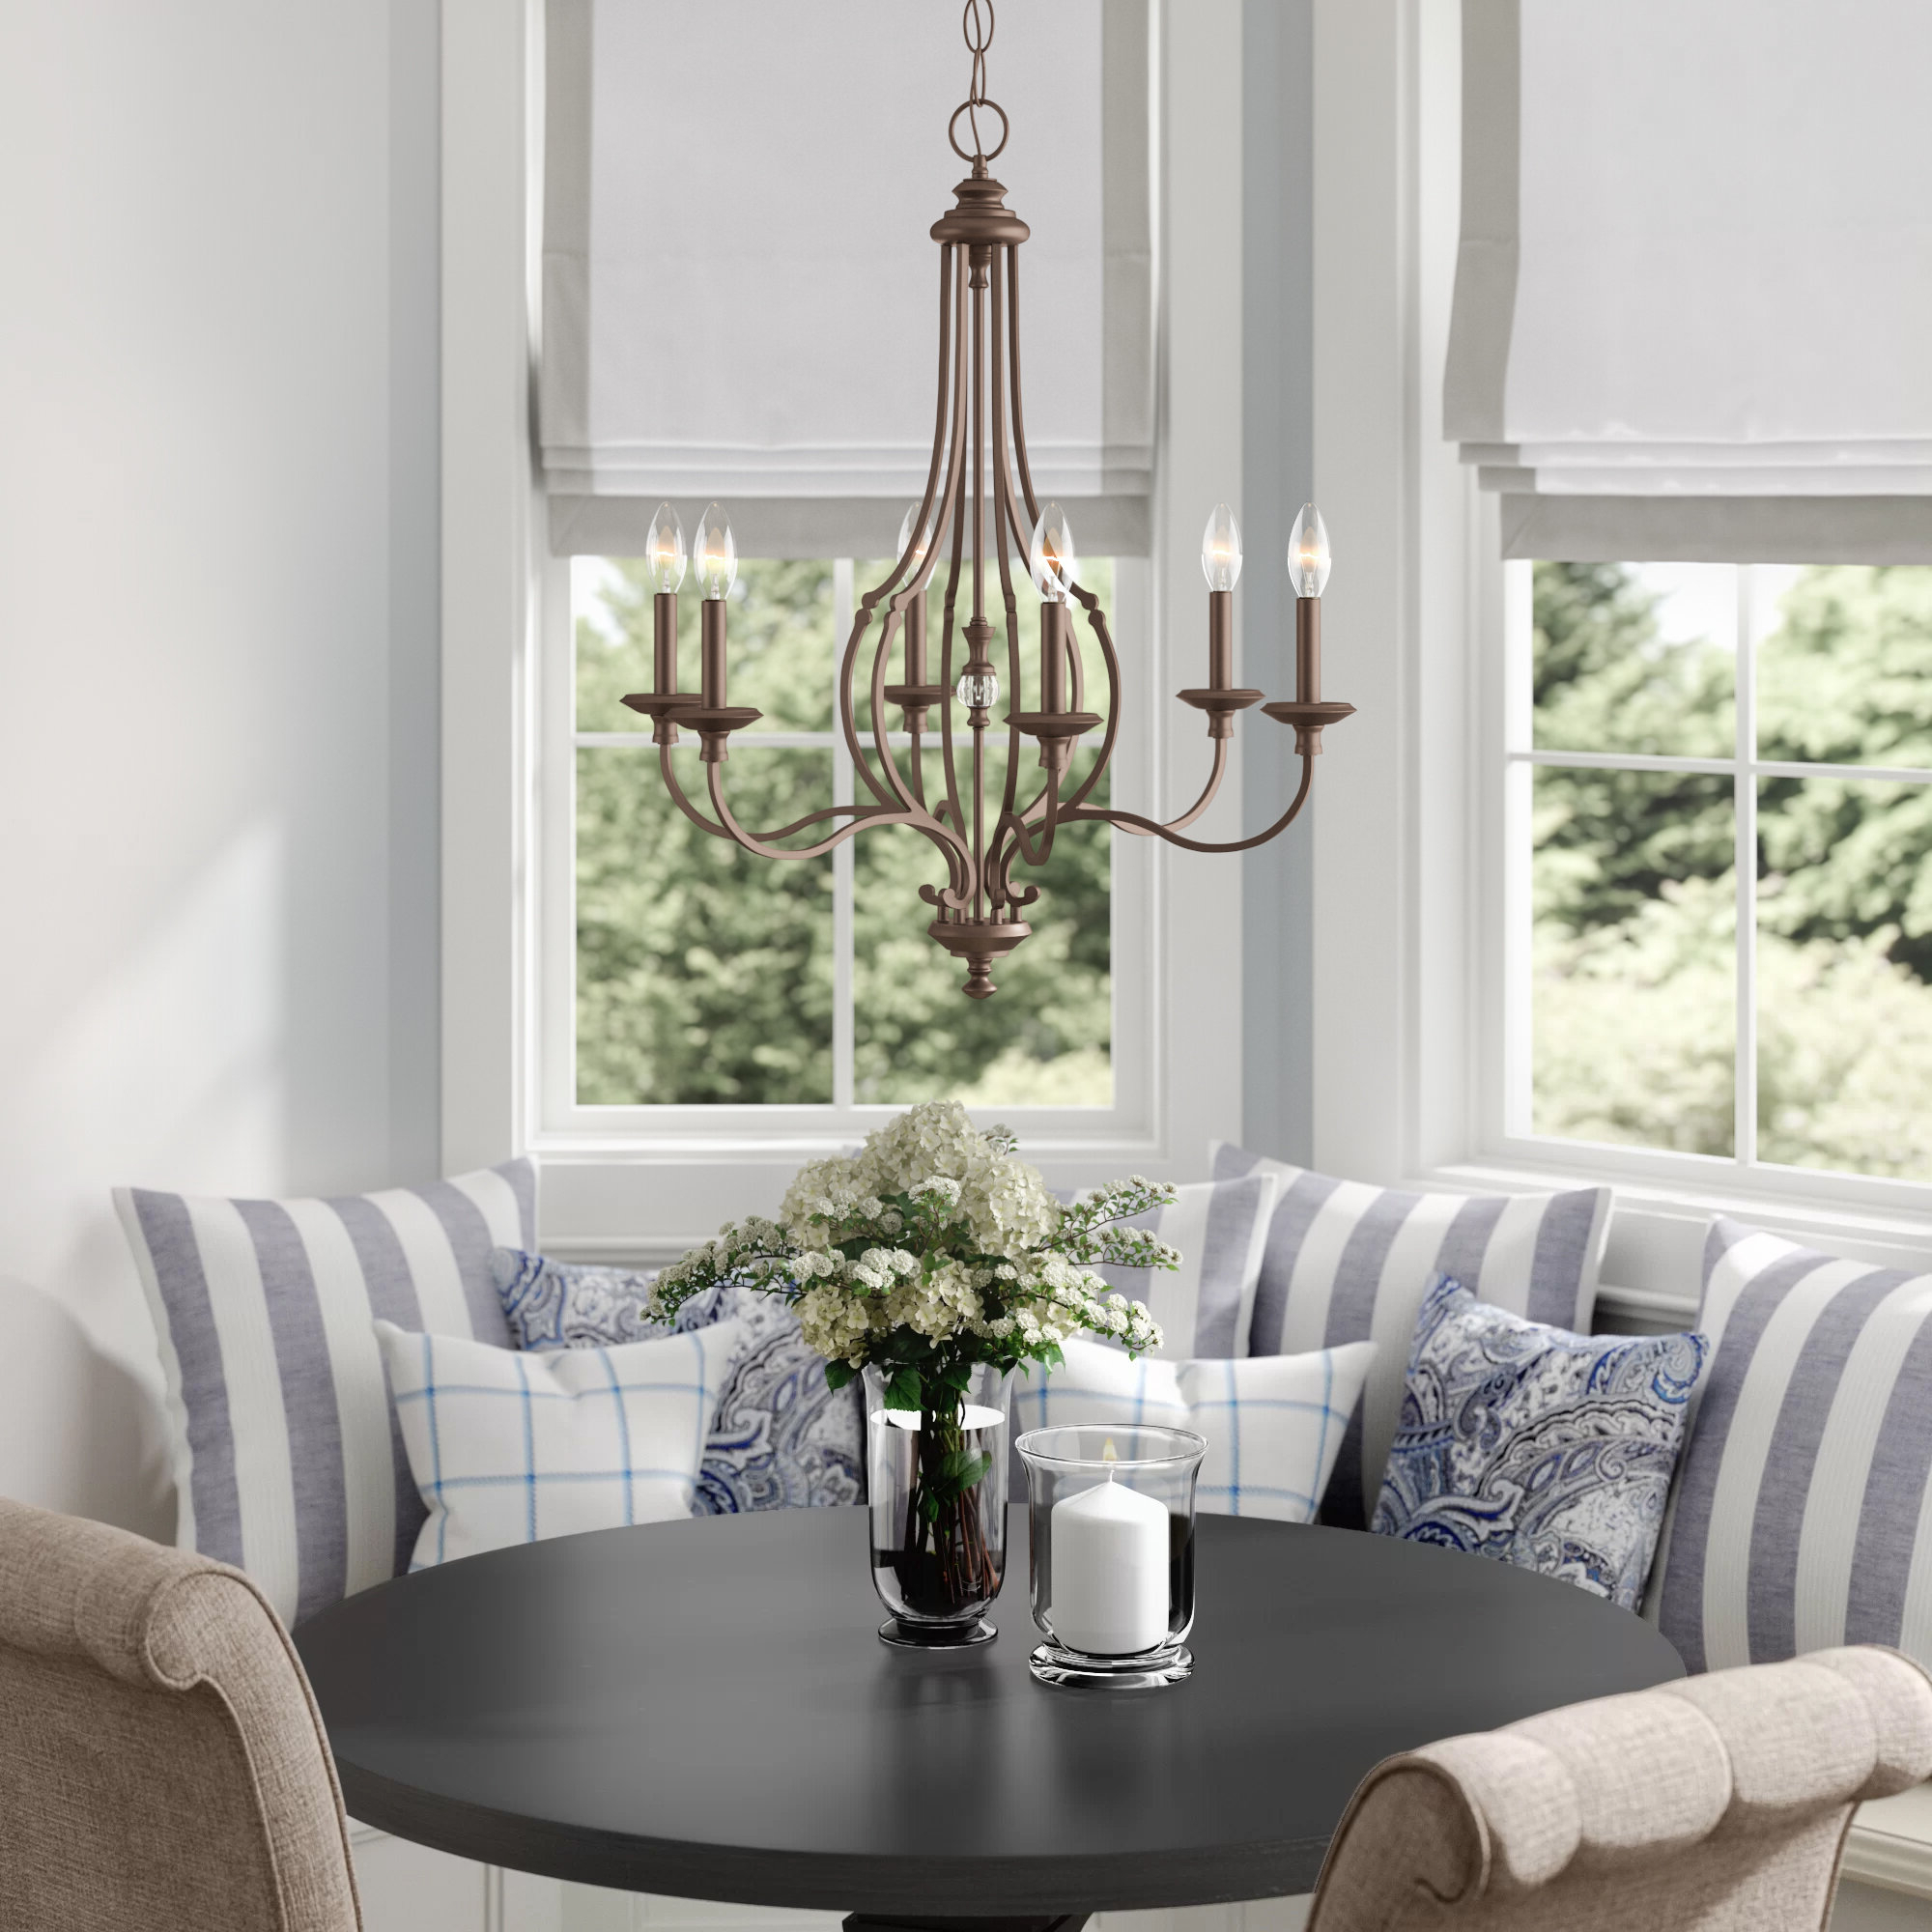 Diaz 6 Light Candle Style Chandeliers Throughout Well Known Jaclyn 6 Light Candle Style Chandelier (Gallery 21 of 25)